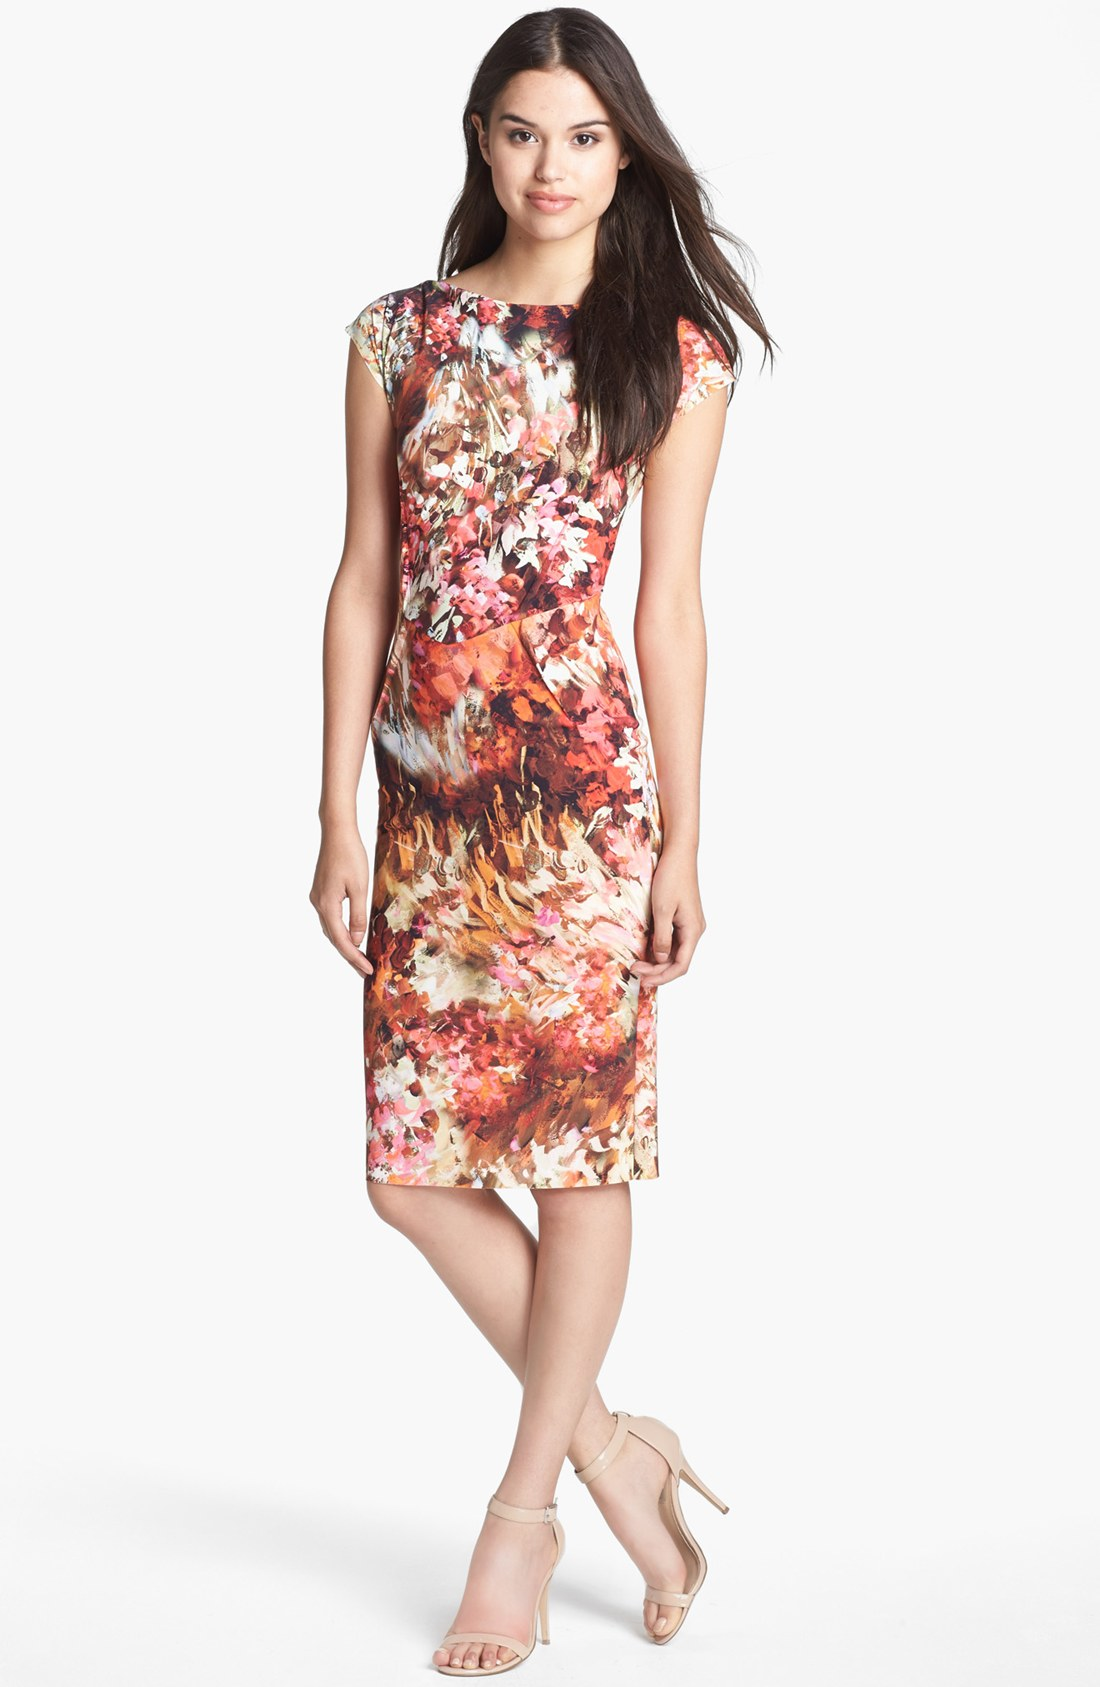 Chiara Boni The Most Popular Dress In America: La Petite Robe Di Chiara Boni Print Jersey Sheath Dress In